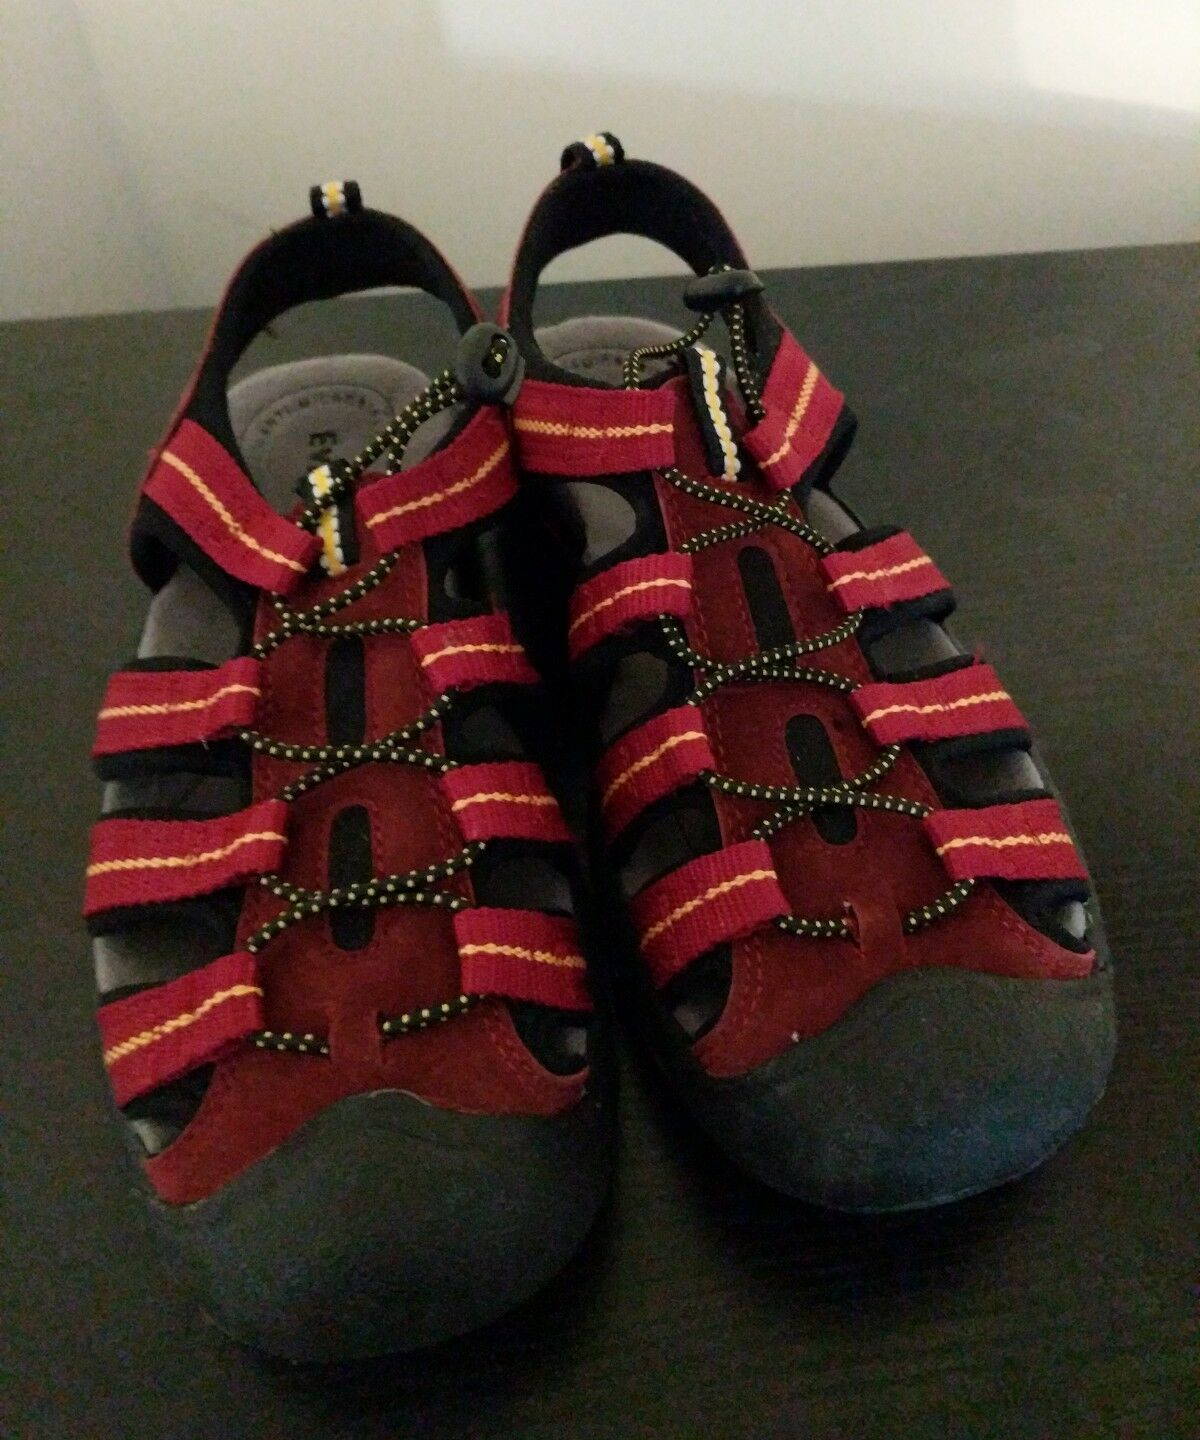 EVEREST Women's Tahoe Red Hiking Sport Sandals Size 7.5